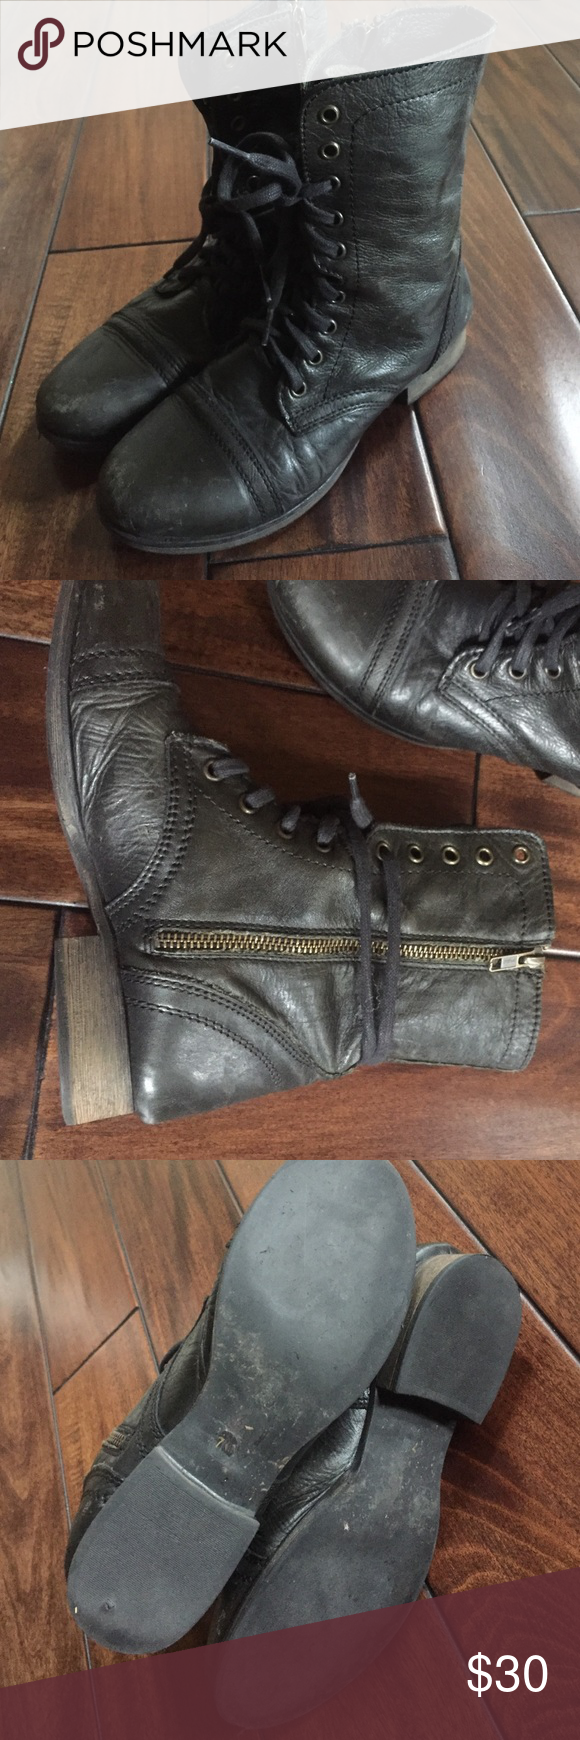 """Steve Madden """"Troopa"""" Boots Black Steve Madden """"Troopa"""" combat boots, fairly worn, a few scuffs at the toe (looks like it's supposed to be there), size 7 Steve Madden Shoes Combat & Moto Boots"""